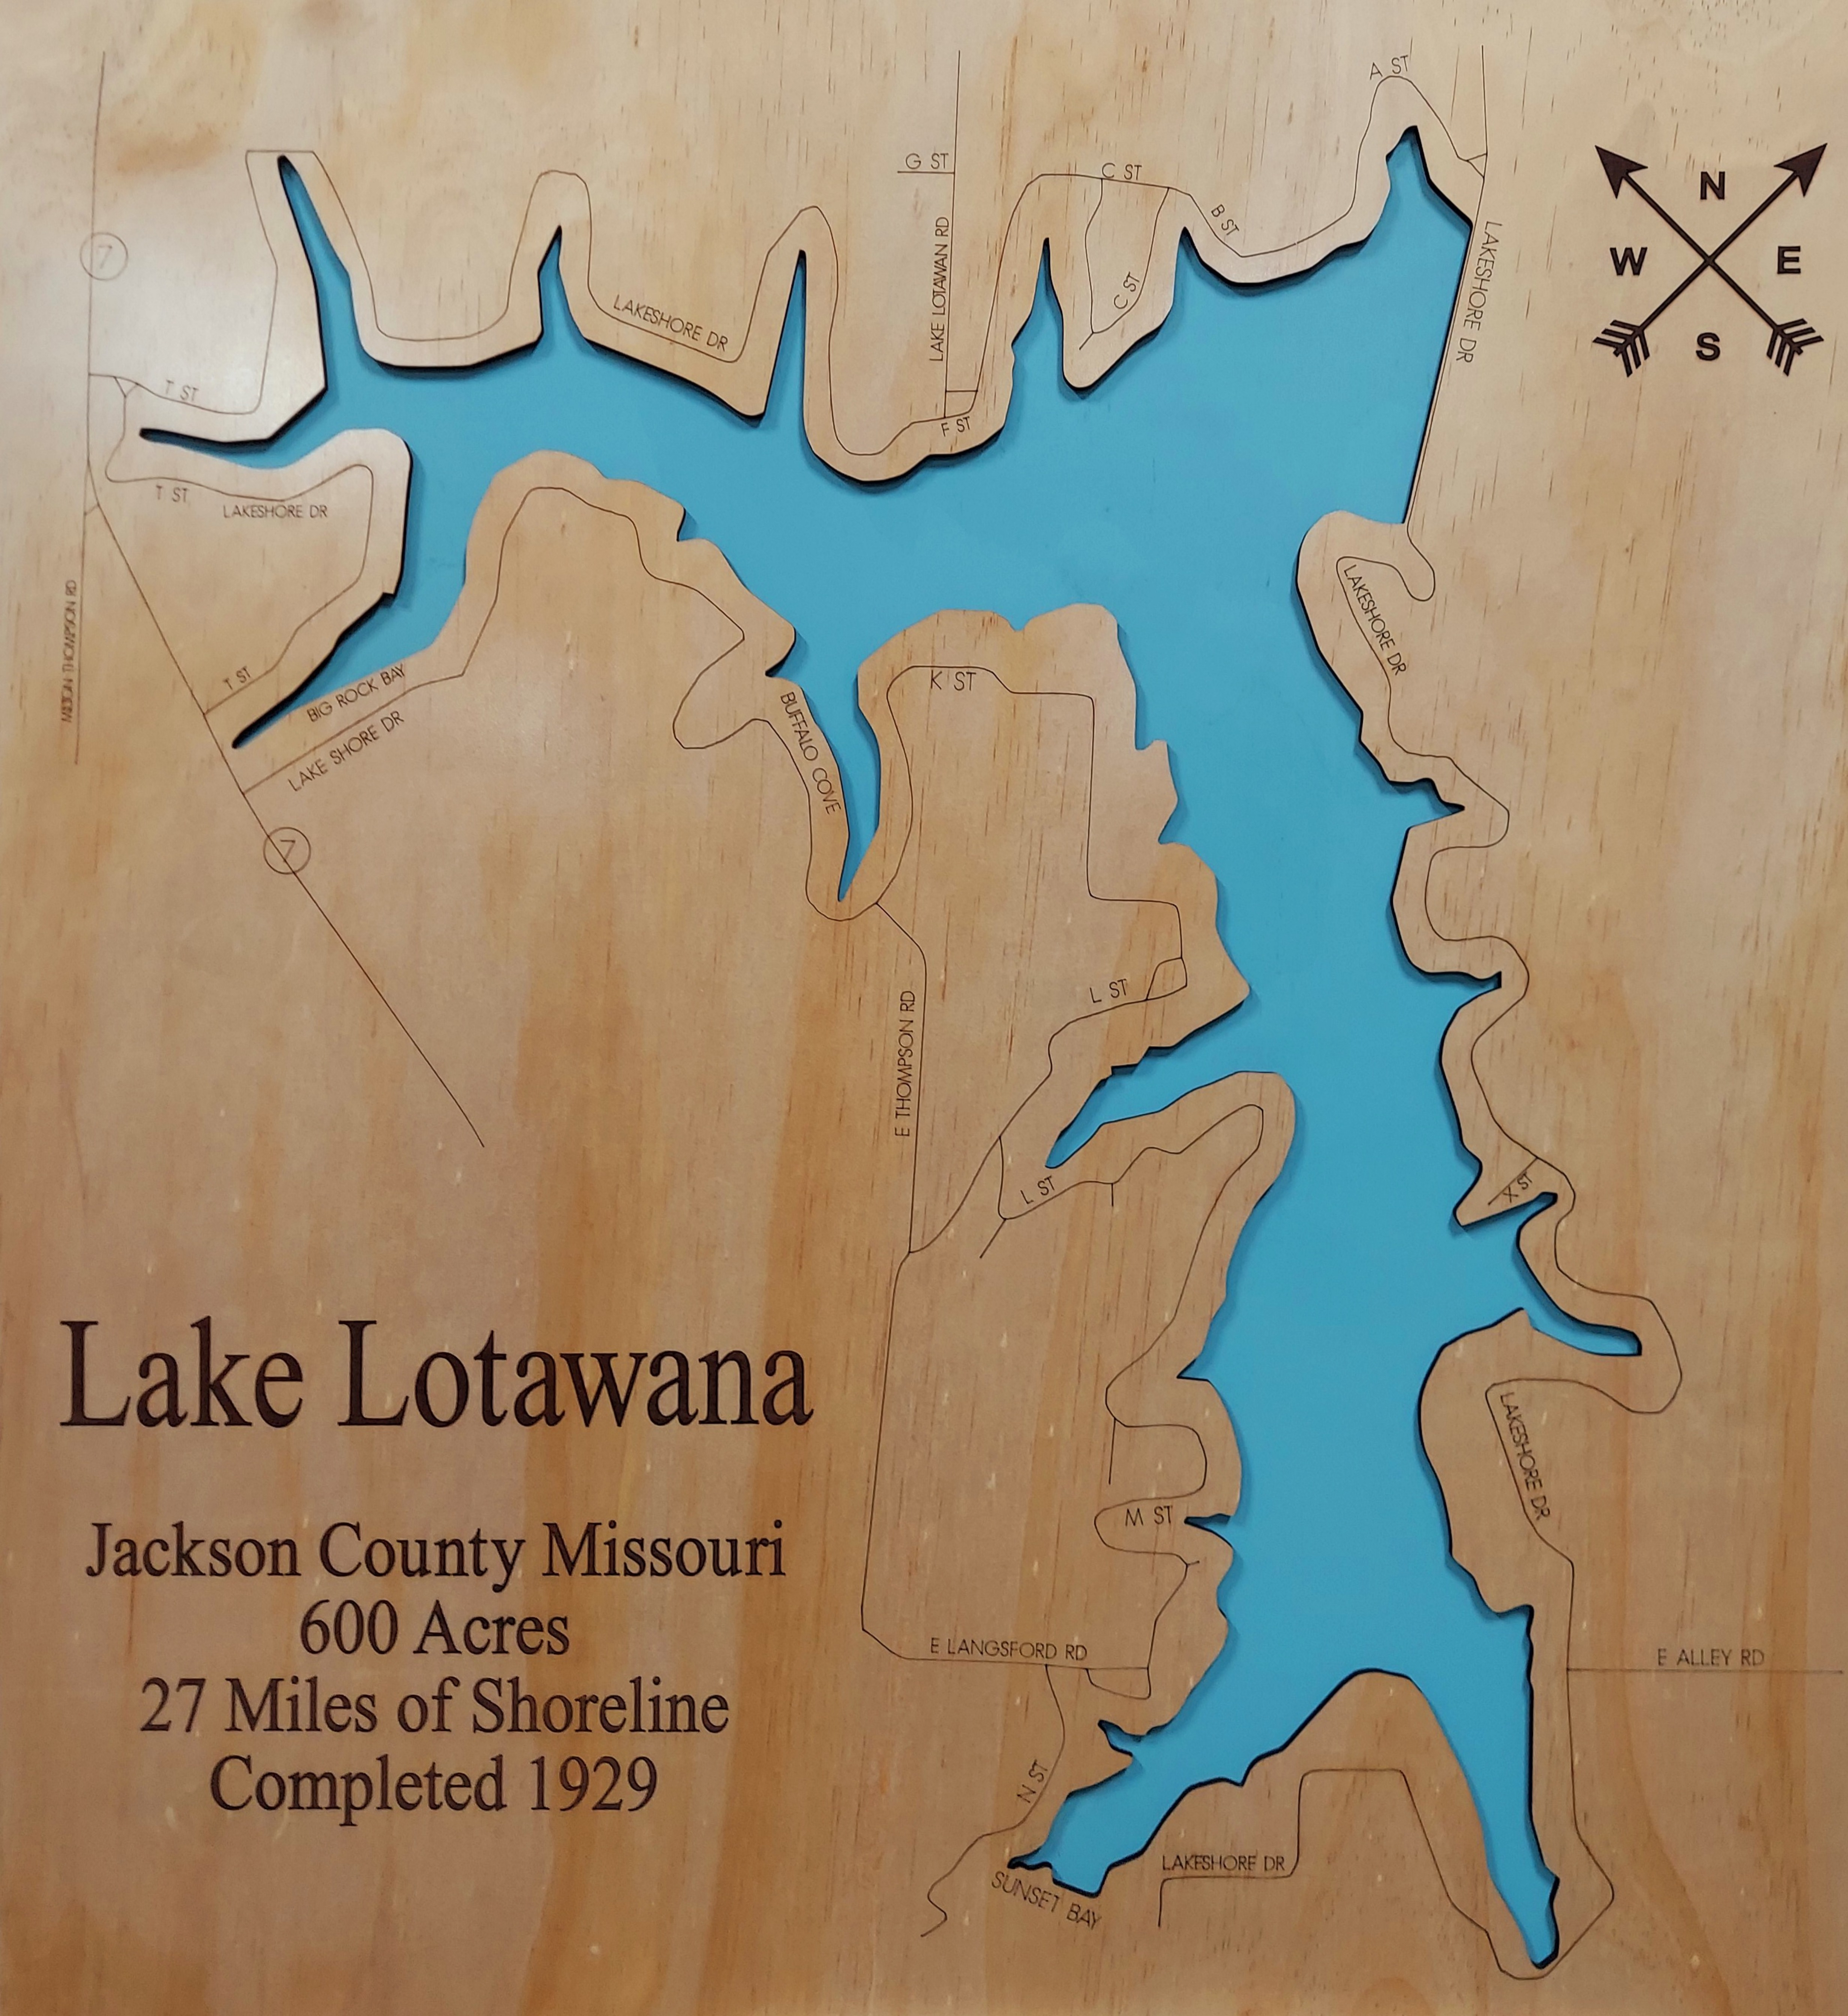 Lake Lotawana Wood Map